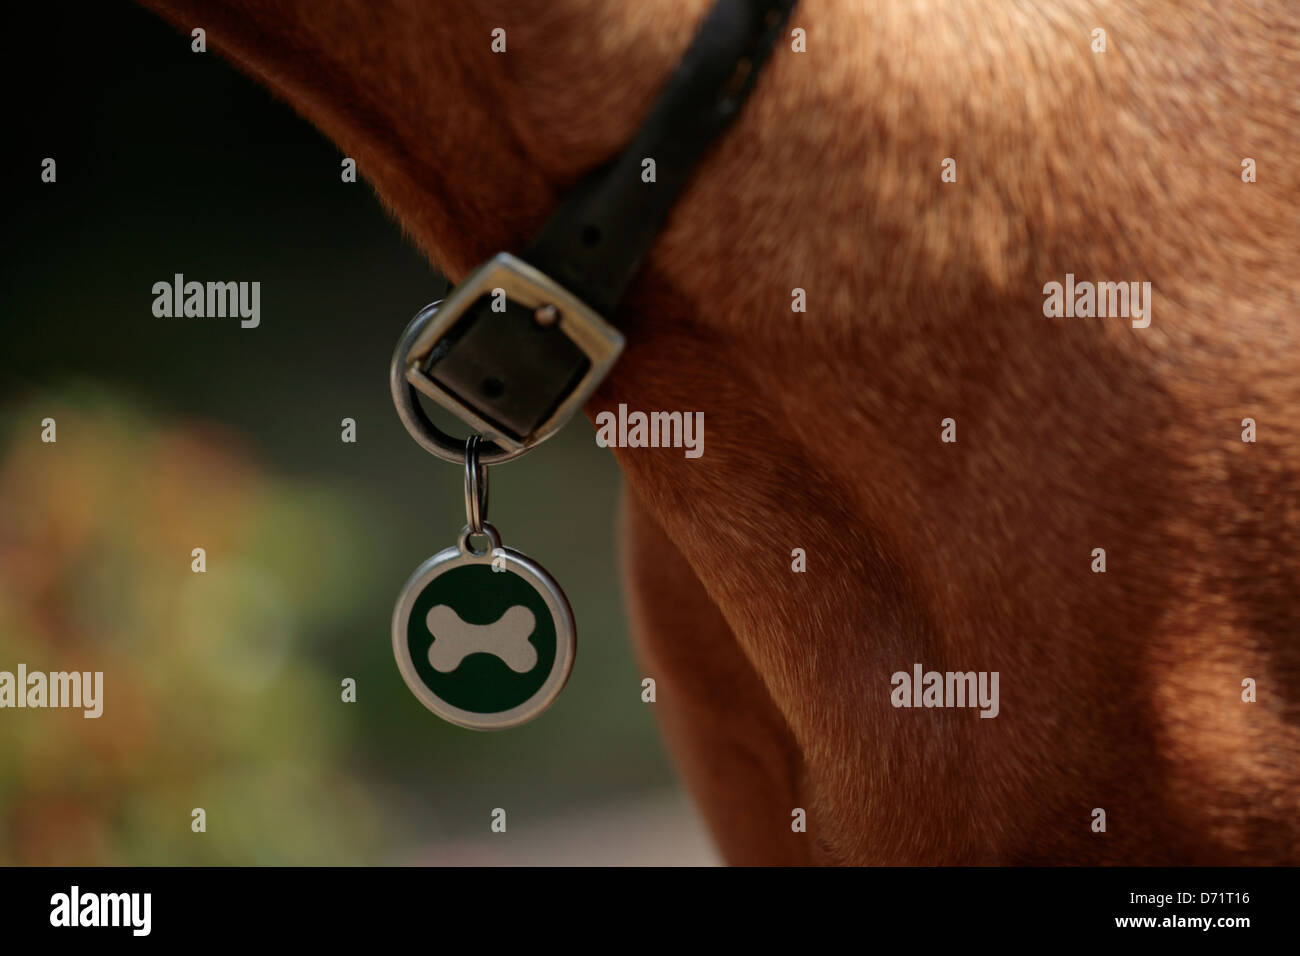 Close up of Bone shaped motif on dog collar - Stock Image